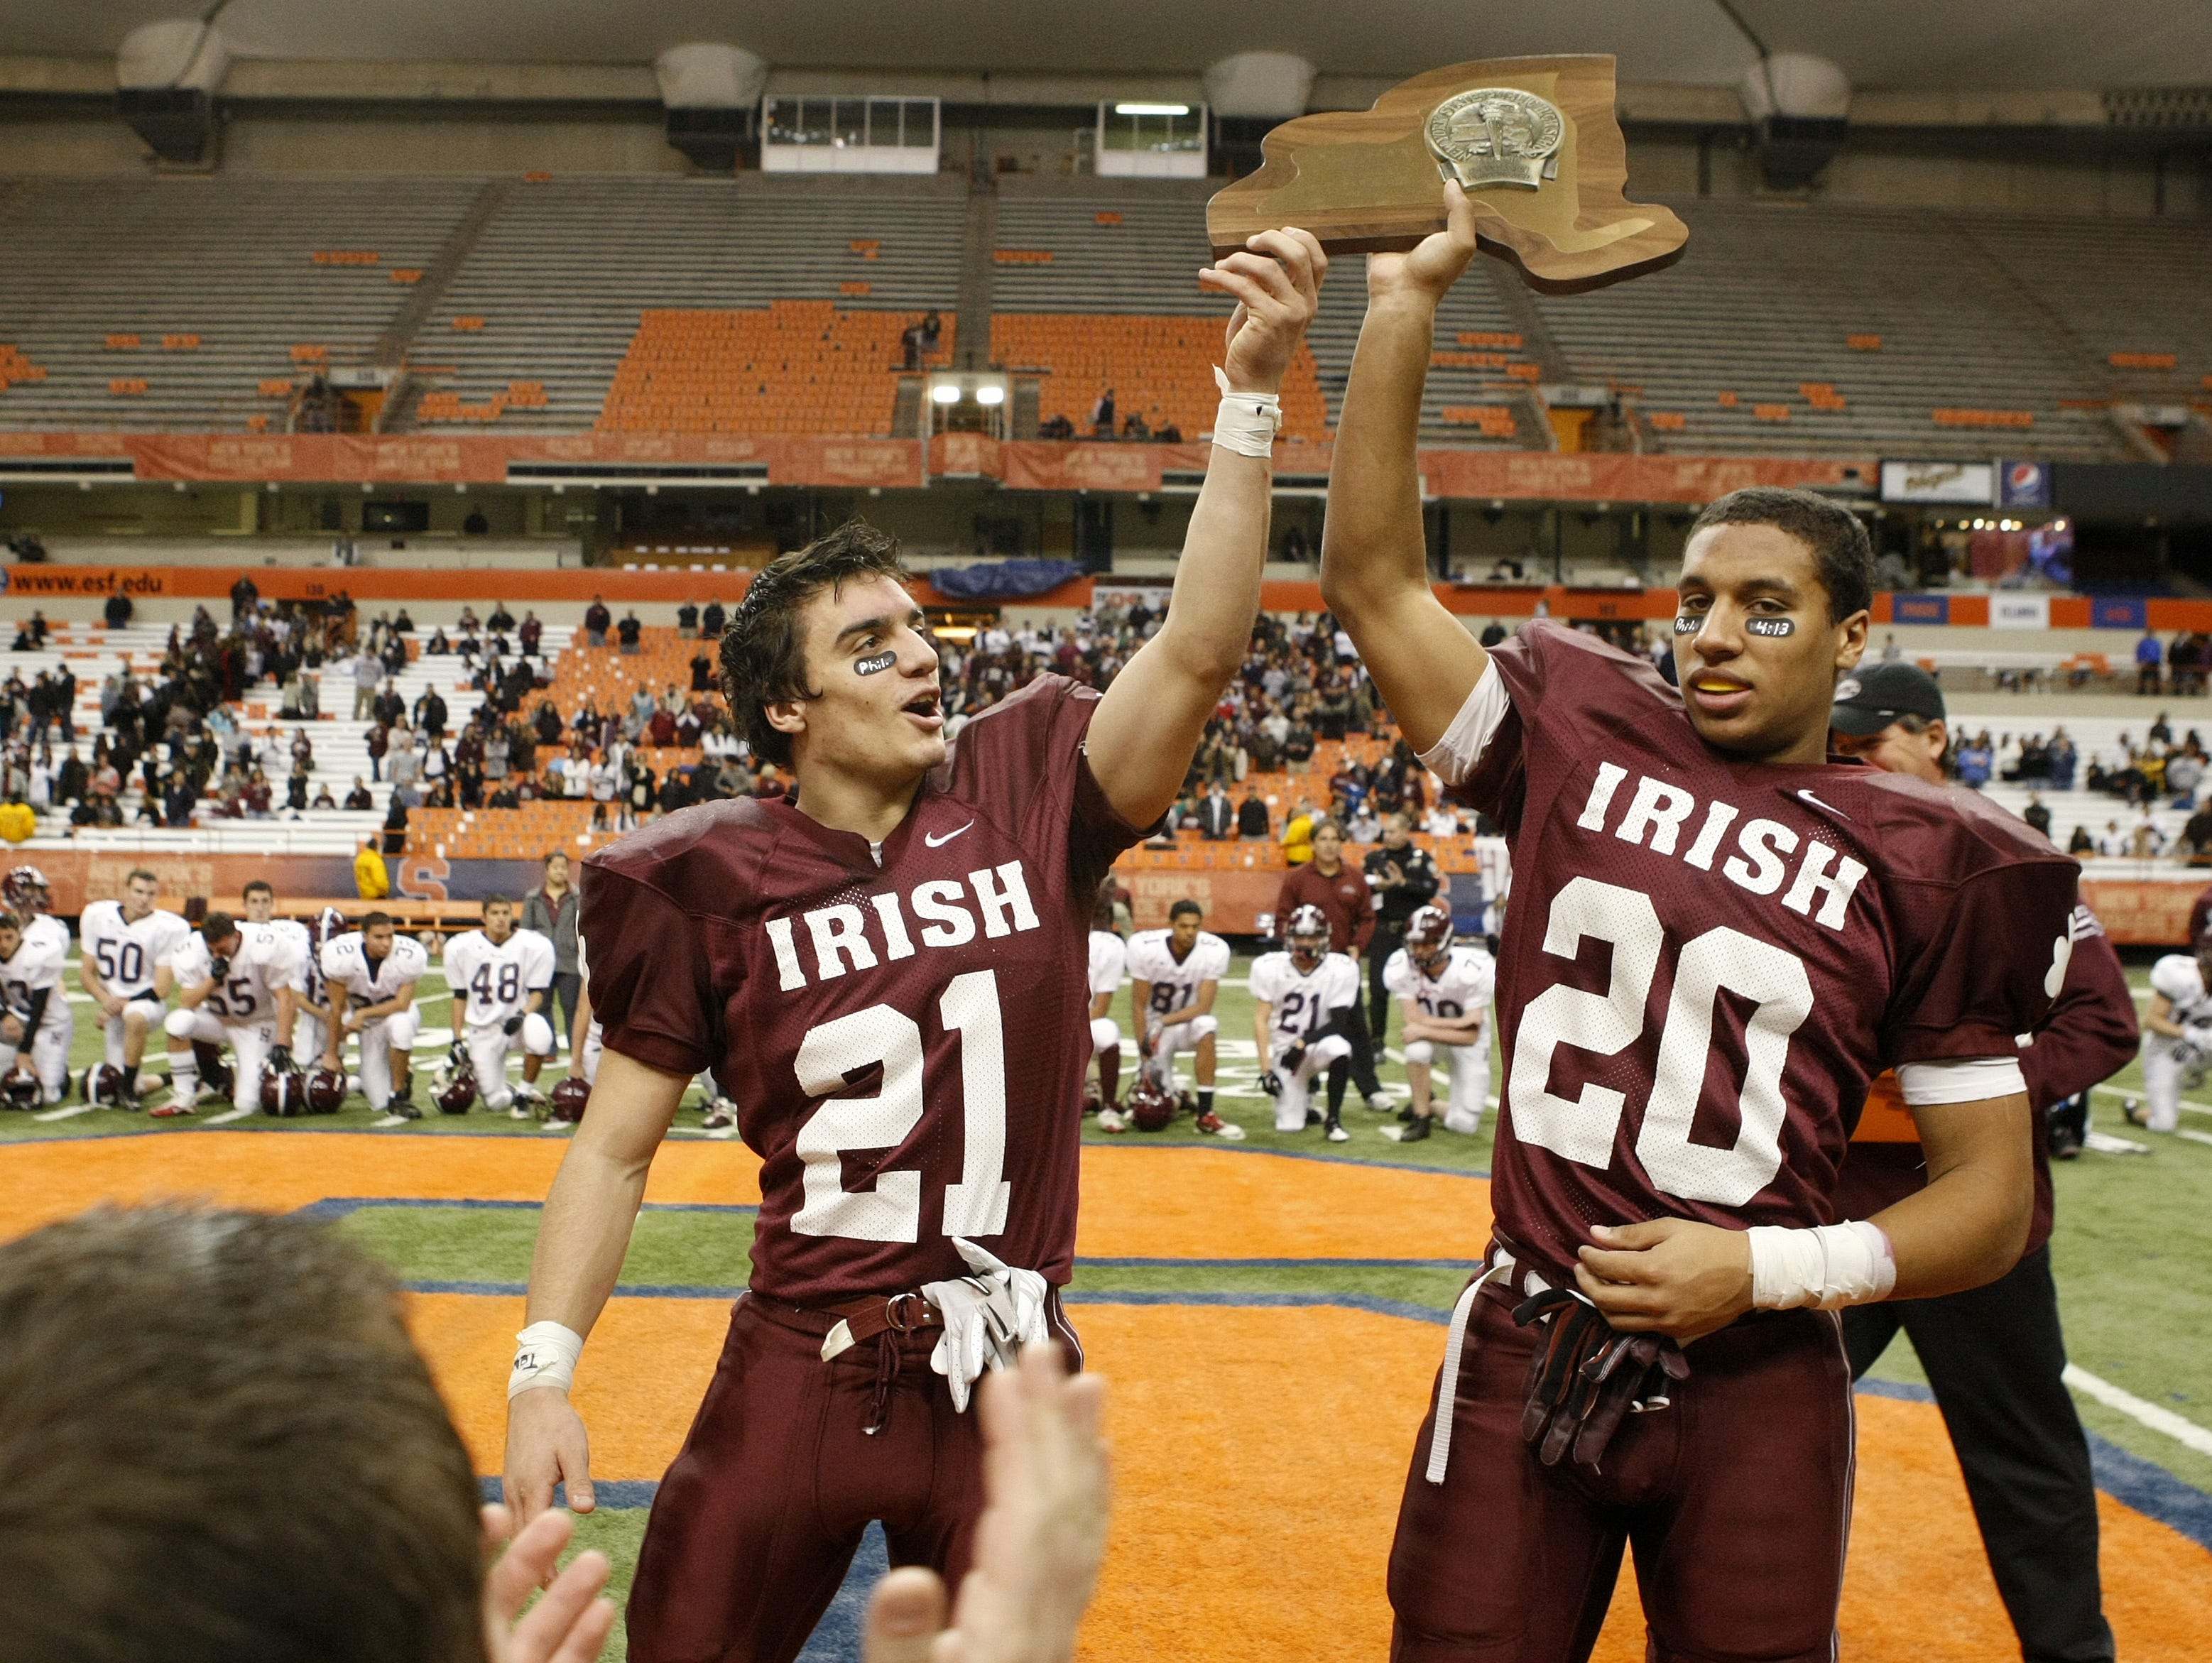 Aquinas senior captains Mike Messina (21), left, and Chris Bostick hoist the 2010 Class A championship trophy after the state final.